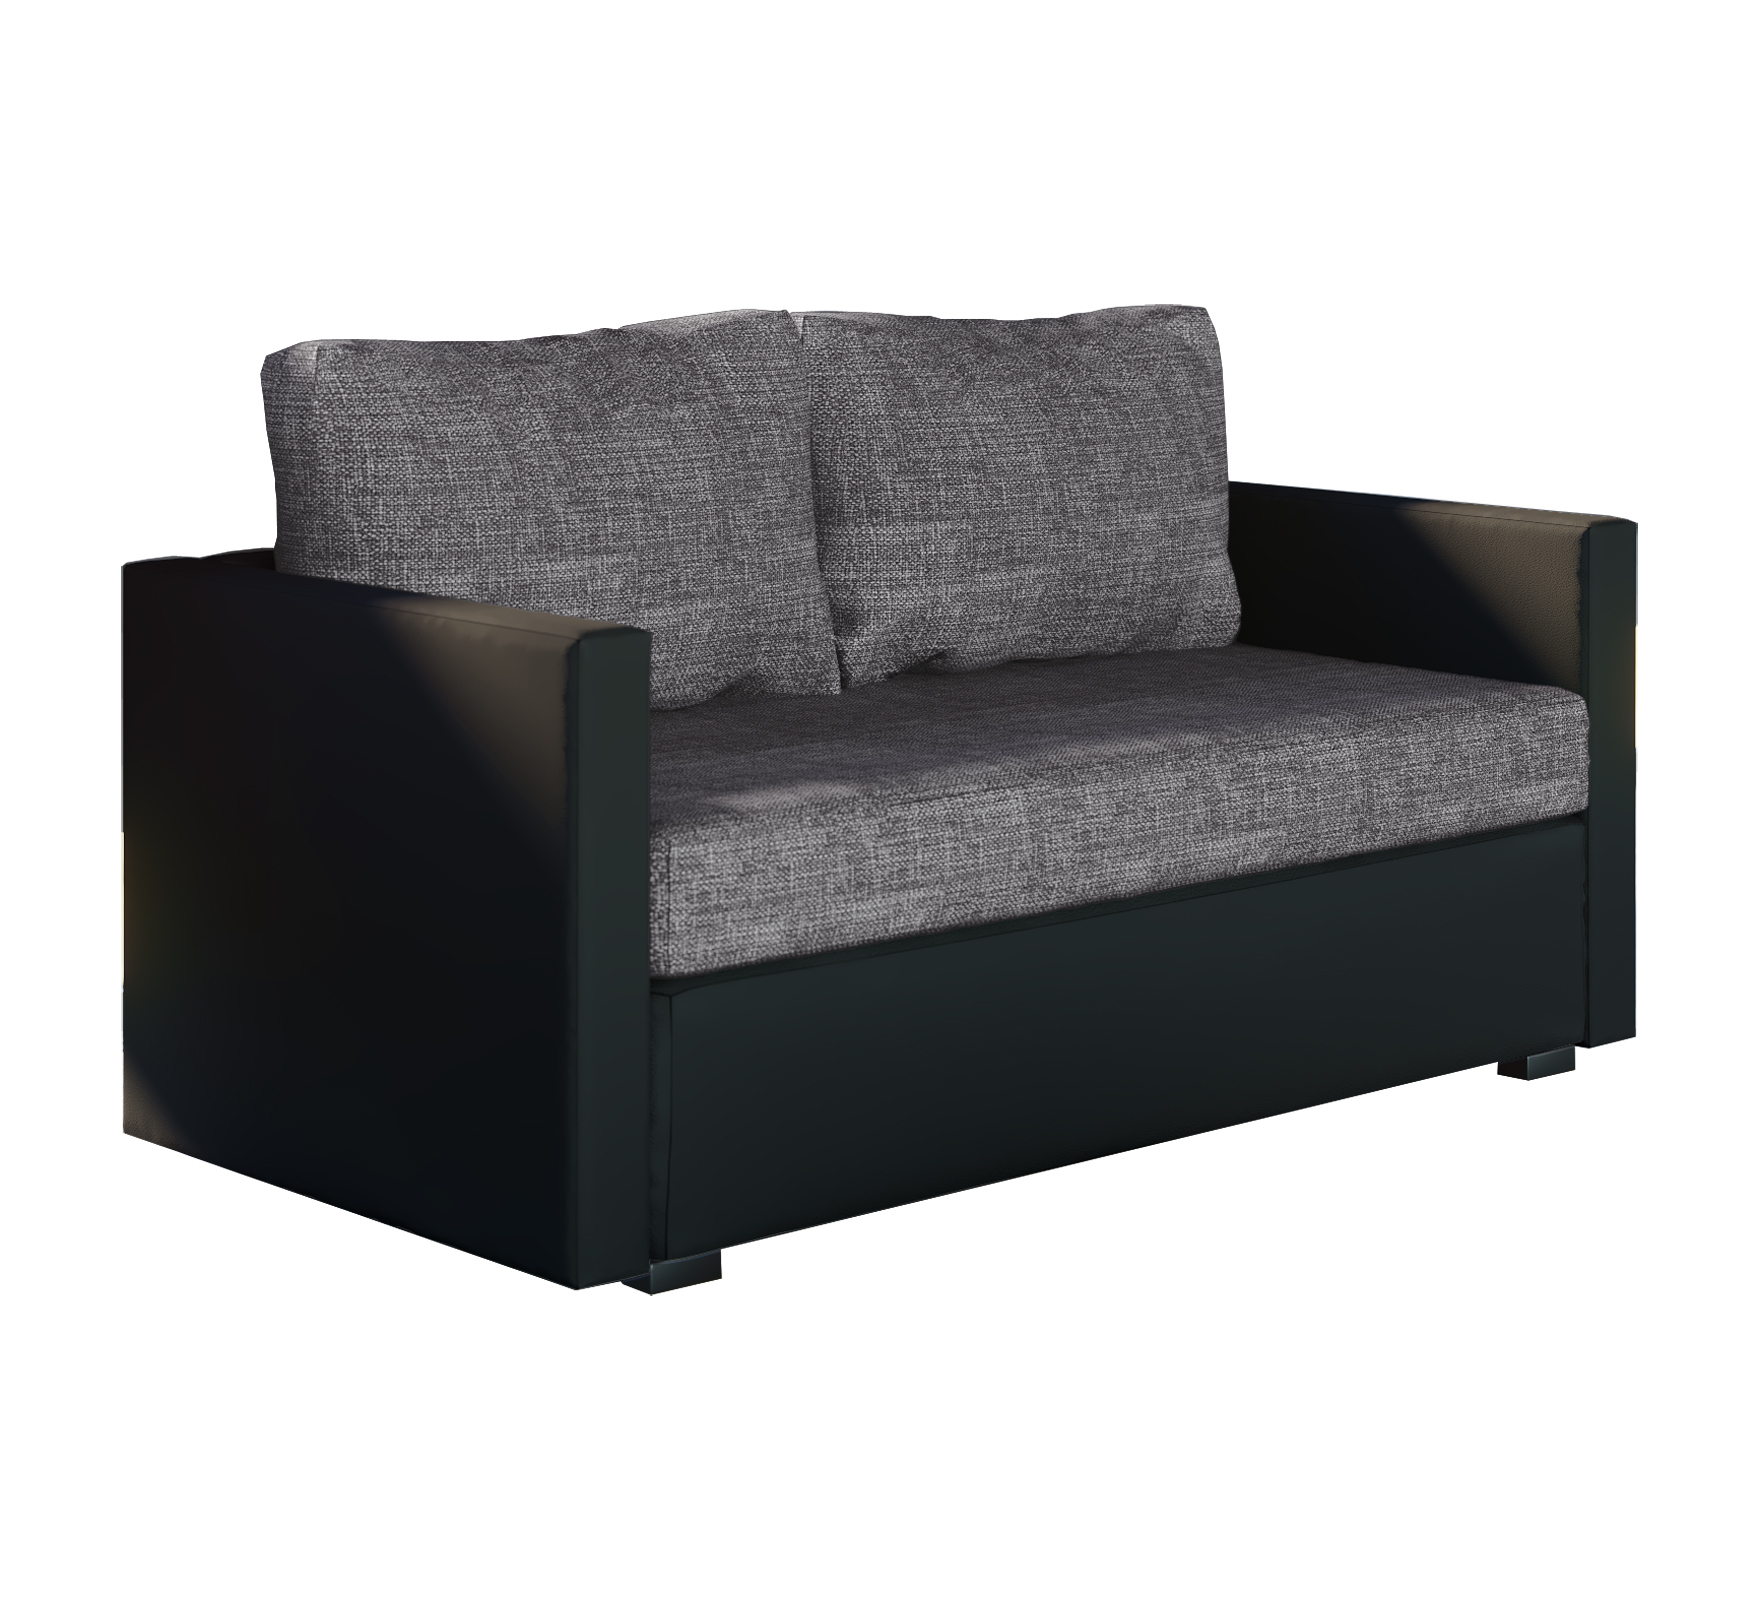 vcm group vcm 2er schlafsofa sofabett couch sofa mit schlaffunktion sinsa schwarz 60 x 122 x. Black Bedroom Furniture Sets. Home Design Ideas